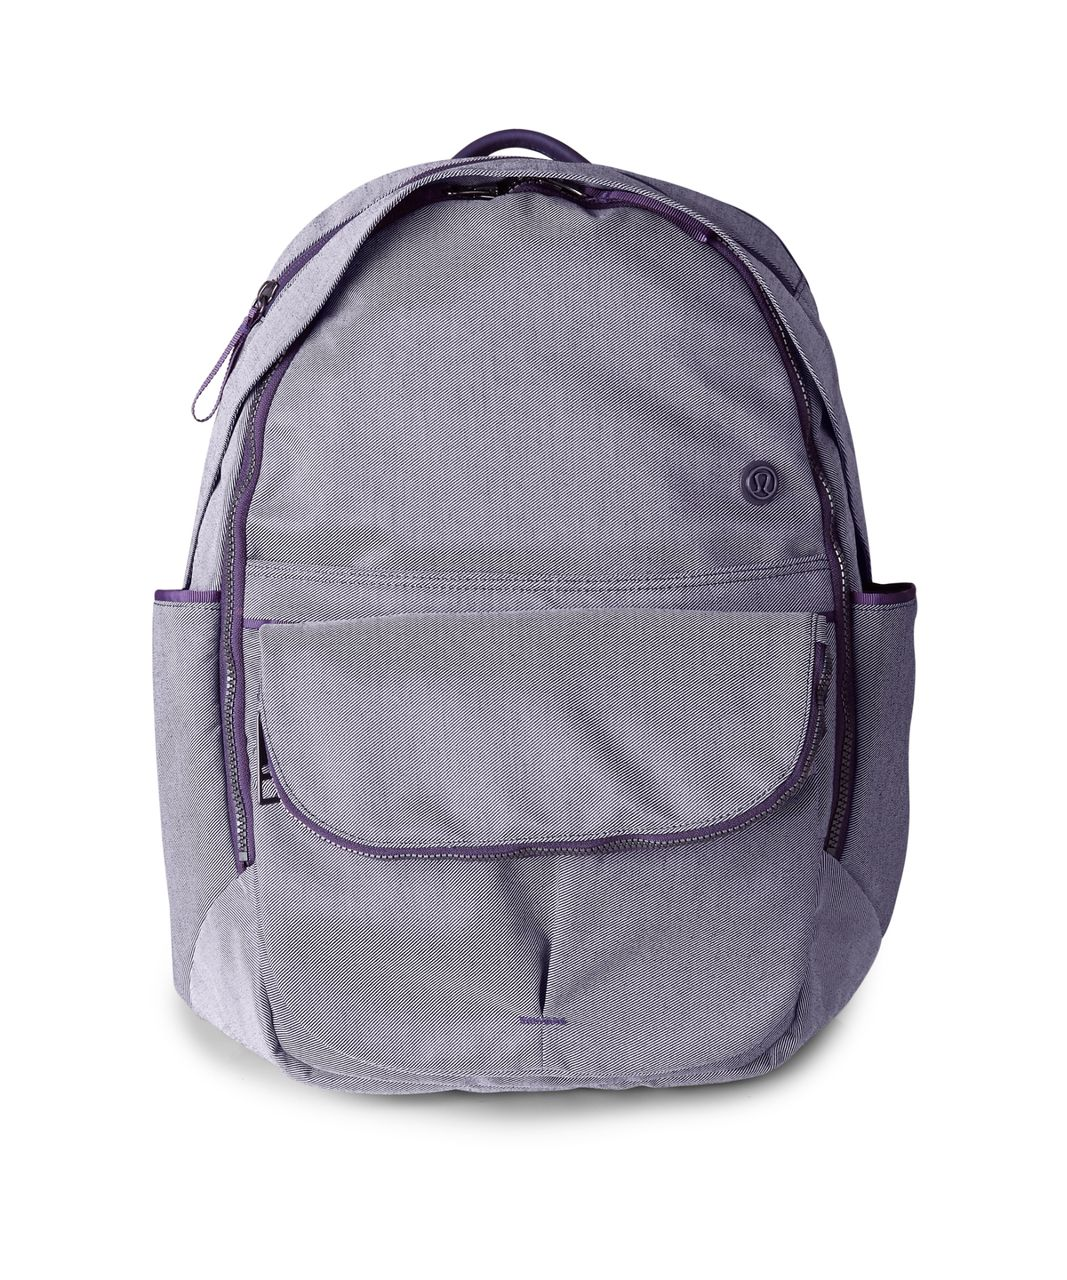 Lululemon All Day Backpack - Deep Zinfandel / White